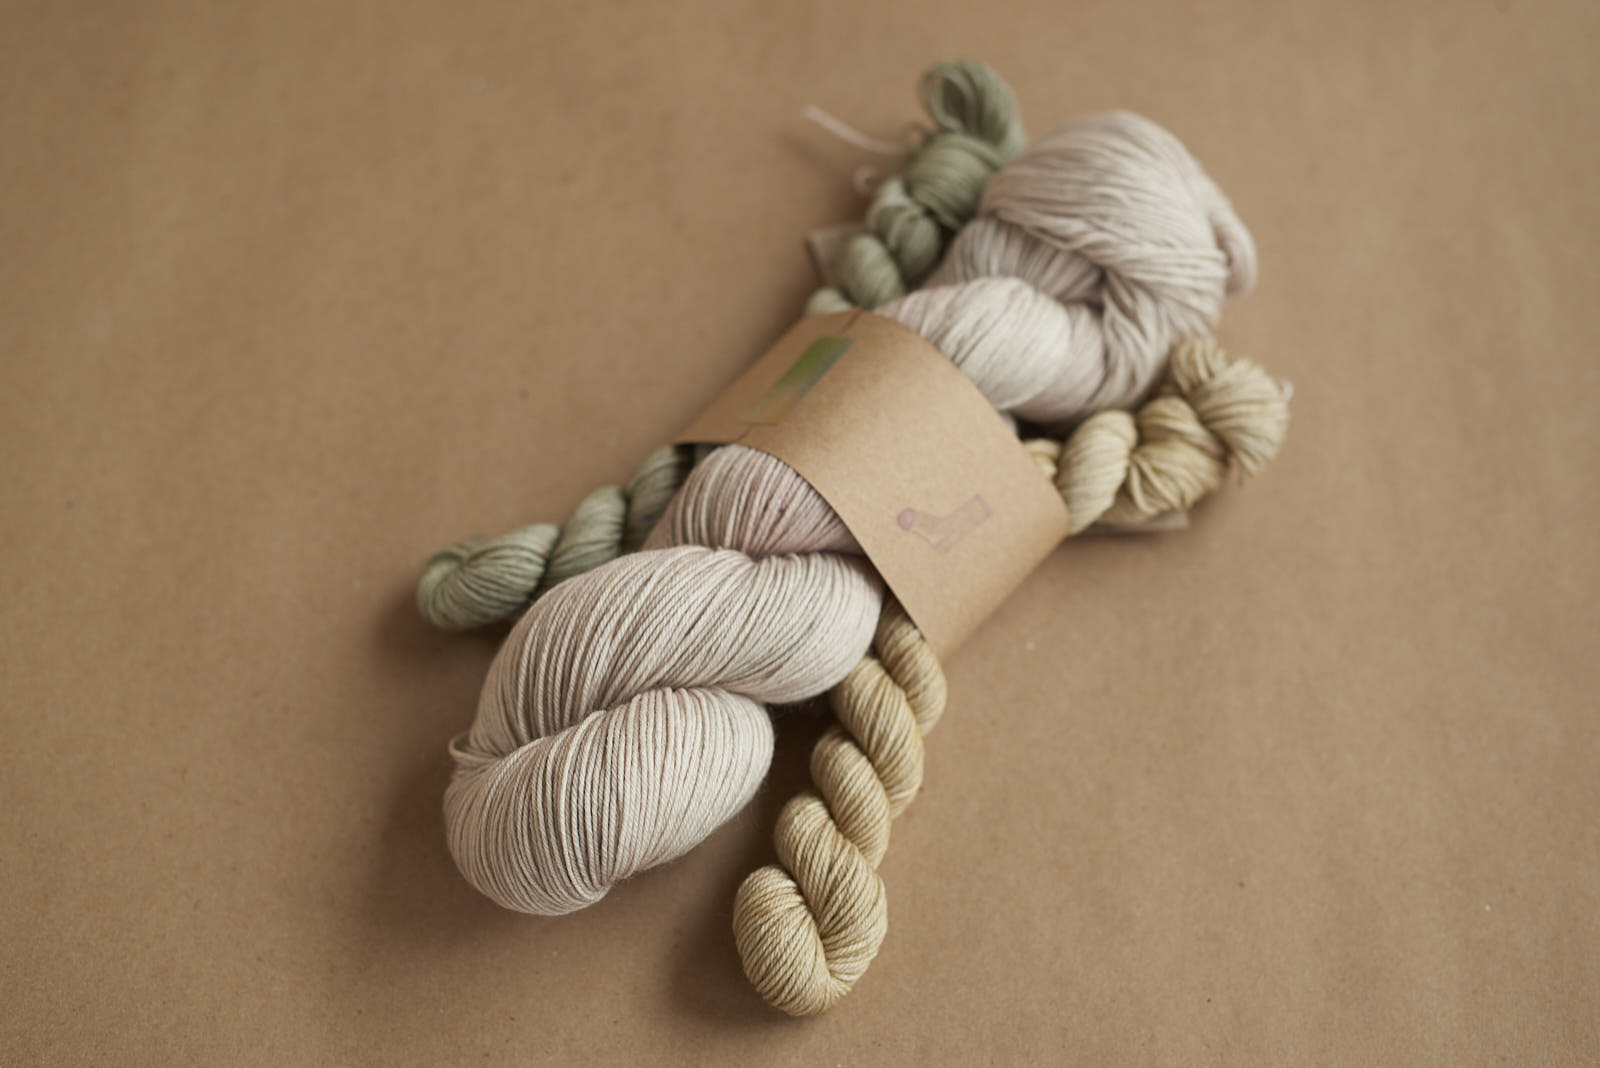 Favourite Sock Kit # 3: Cygnet with Moonlight and Dew Drop Sock Minis